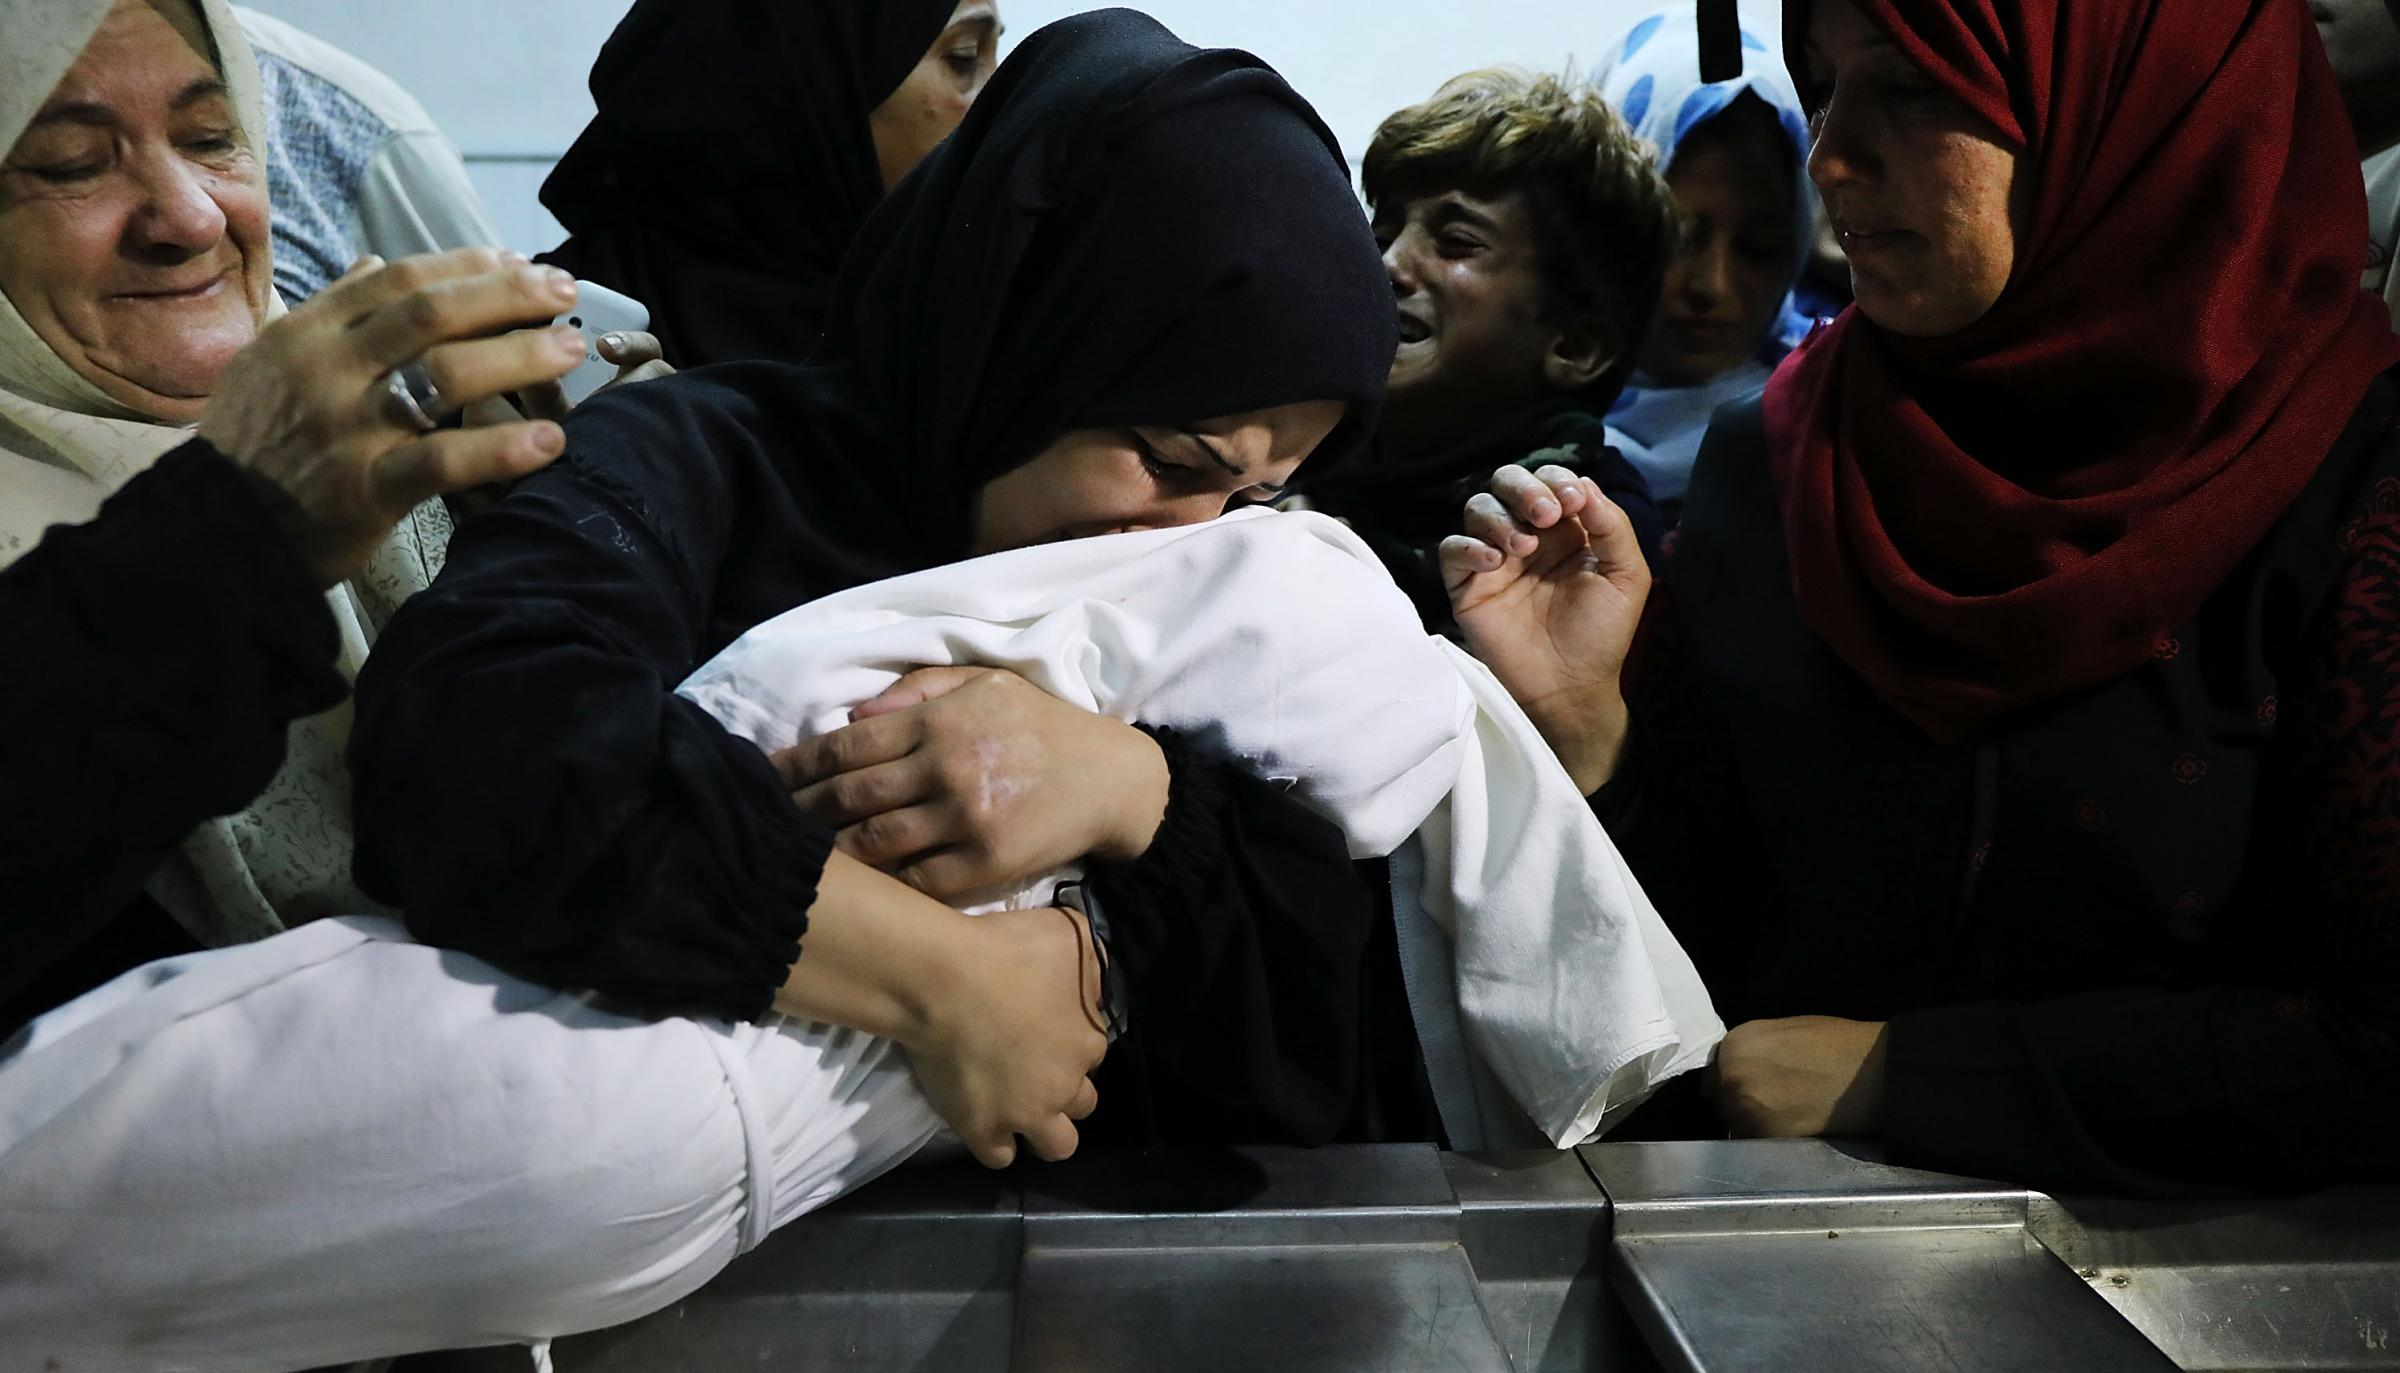 The mother of eight-month-old Leila Anwar Ghandoor, who died in the hospital yesterday morning from tear gas inhalation, hugs her daughter a last time as she is prepared for burial. Photograph: Getty